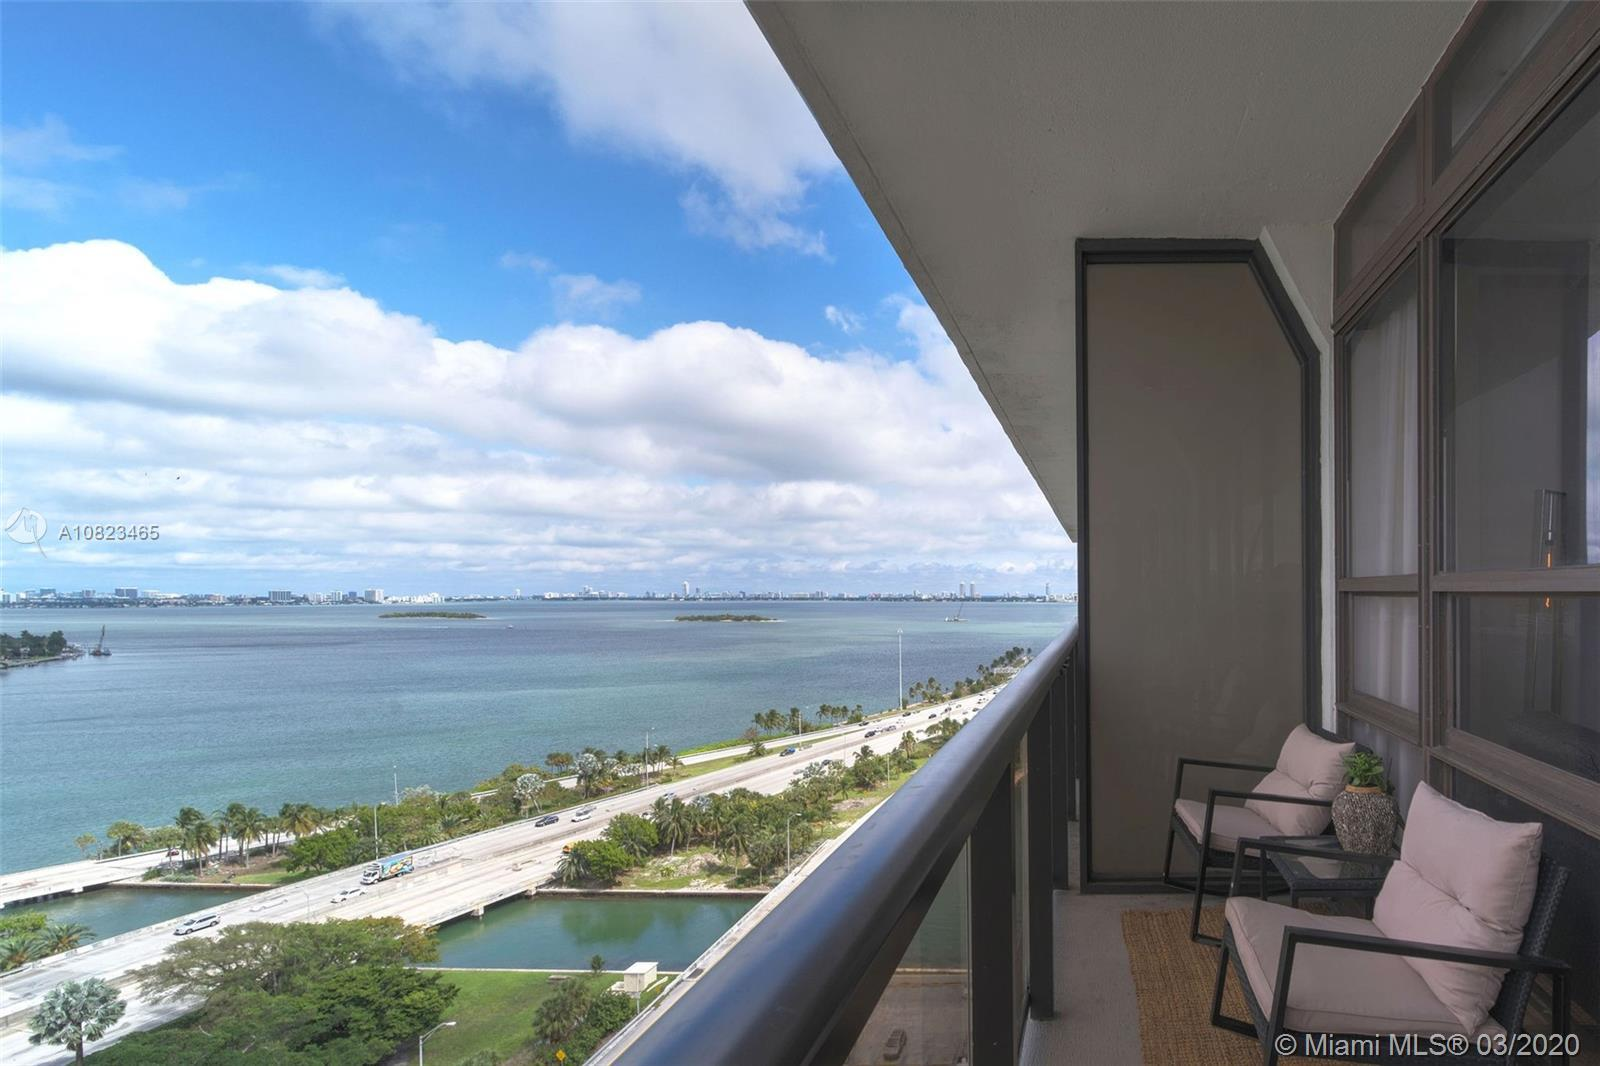 The property is located in the heart of trendy midtown, next to the entrance of 195 making the acces